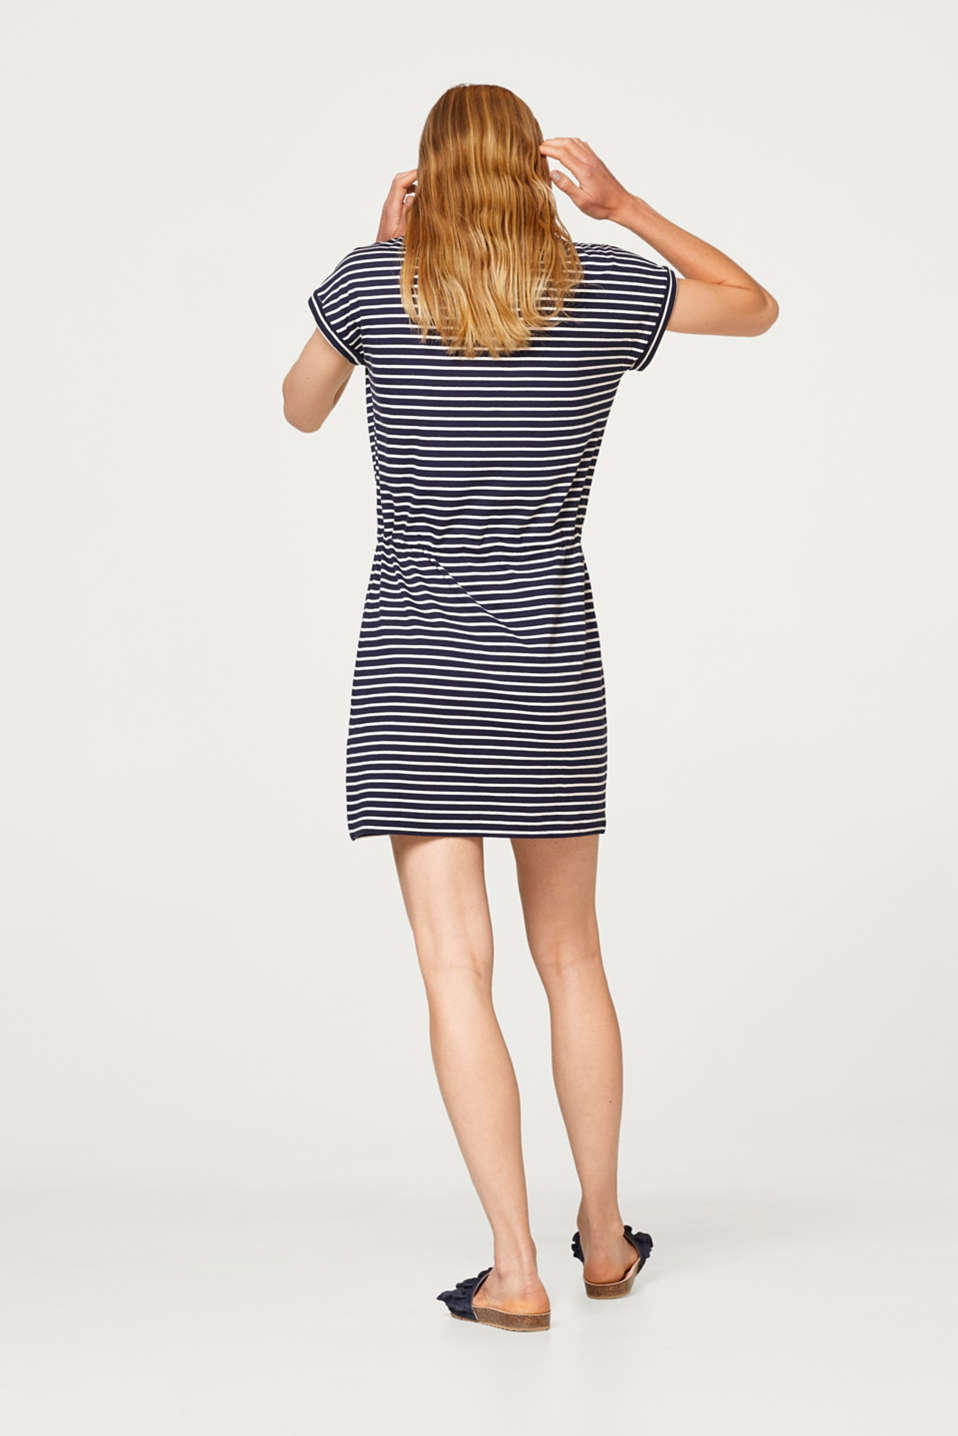 Jersey dress with a breast pocket and a drawstring waist